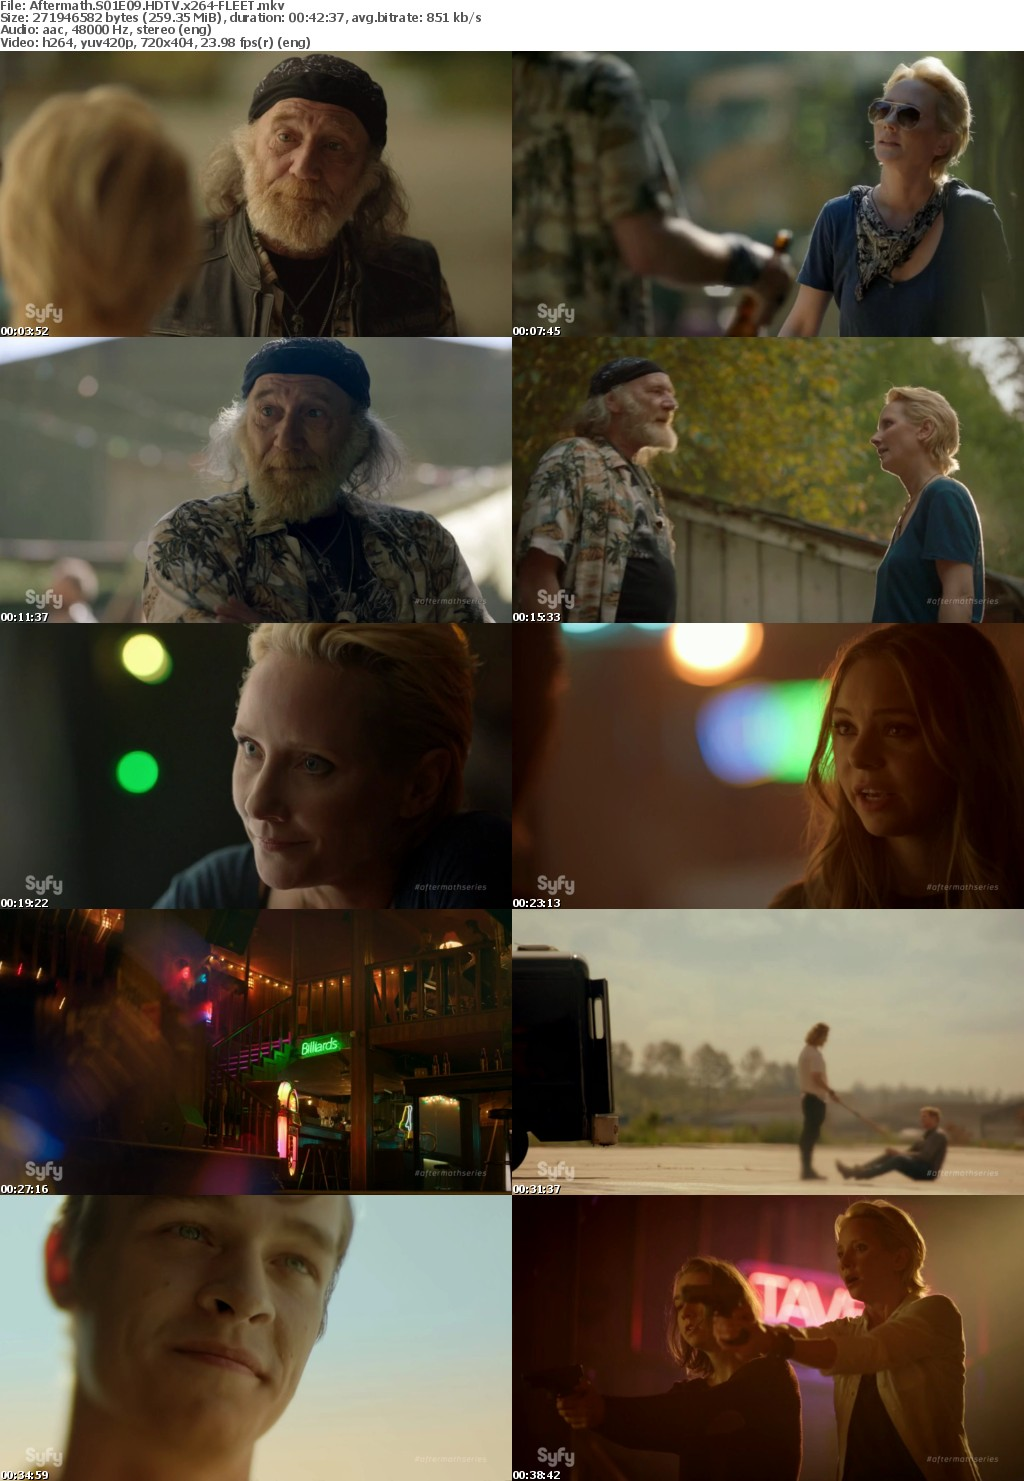 Aftermath S01E09 HDTV x264-FLEET